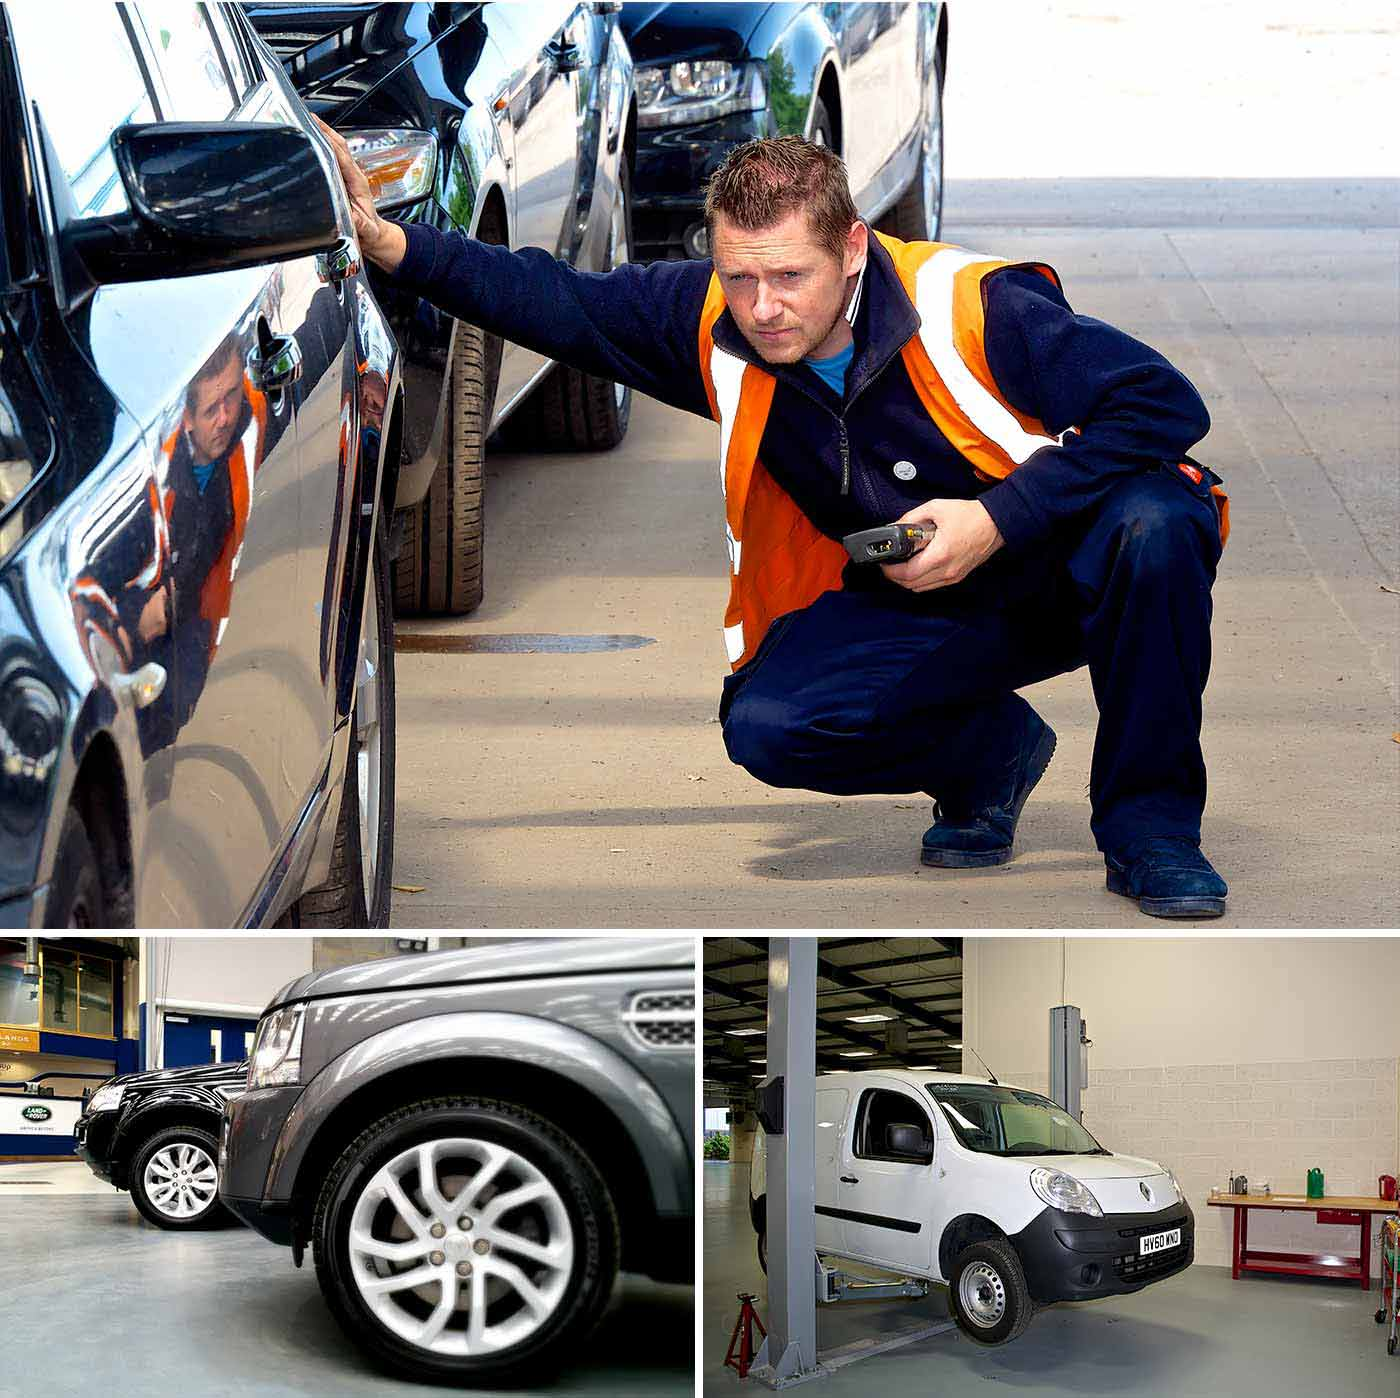 One of our staff inspecting a car, some Land Rovers and a van on a vehicle lift